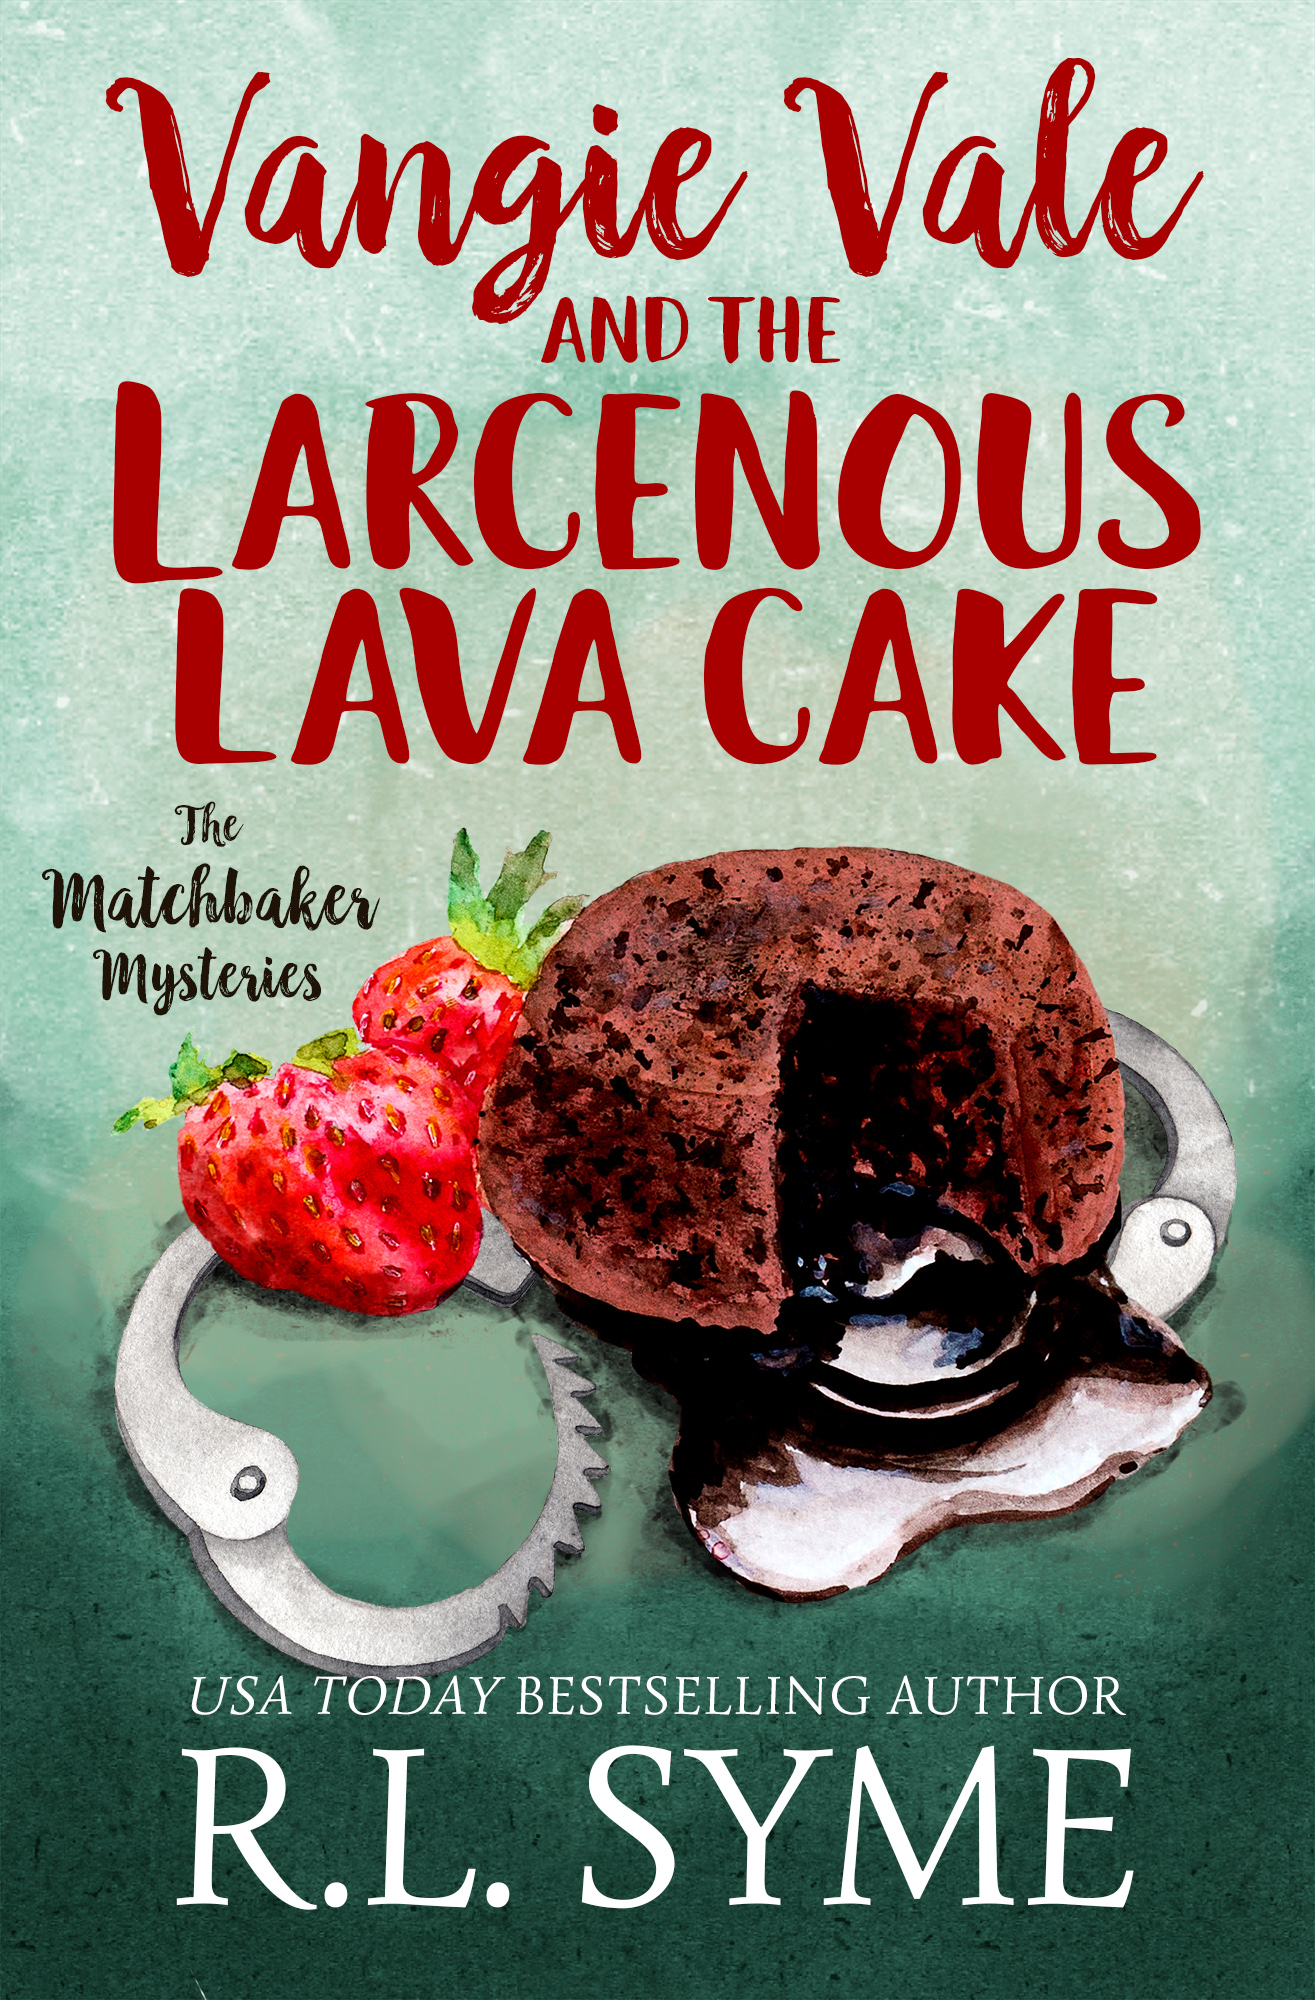 Vangie Vale and the Larcenous Lava Cake